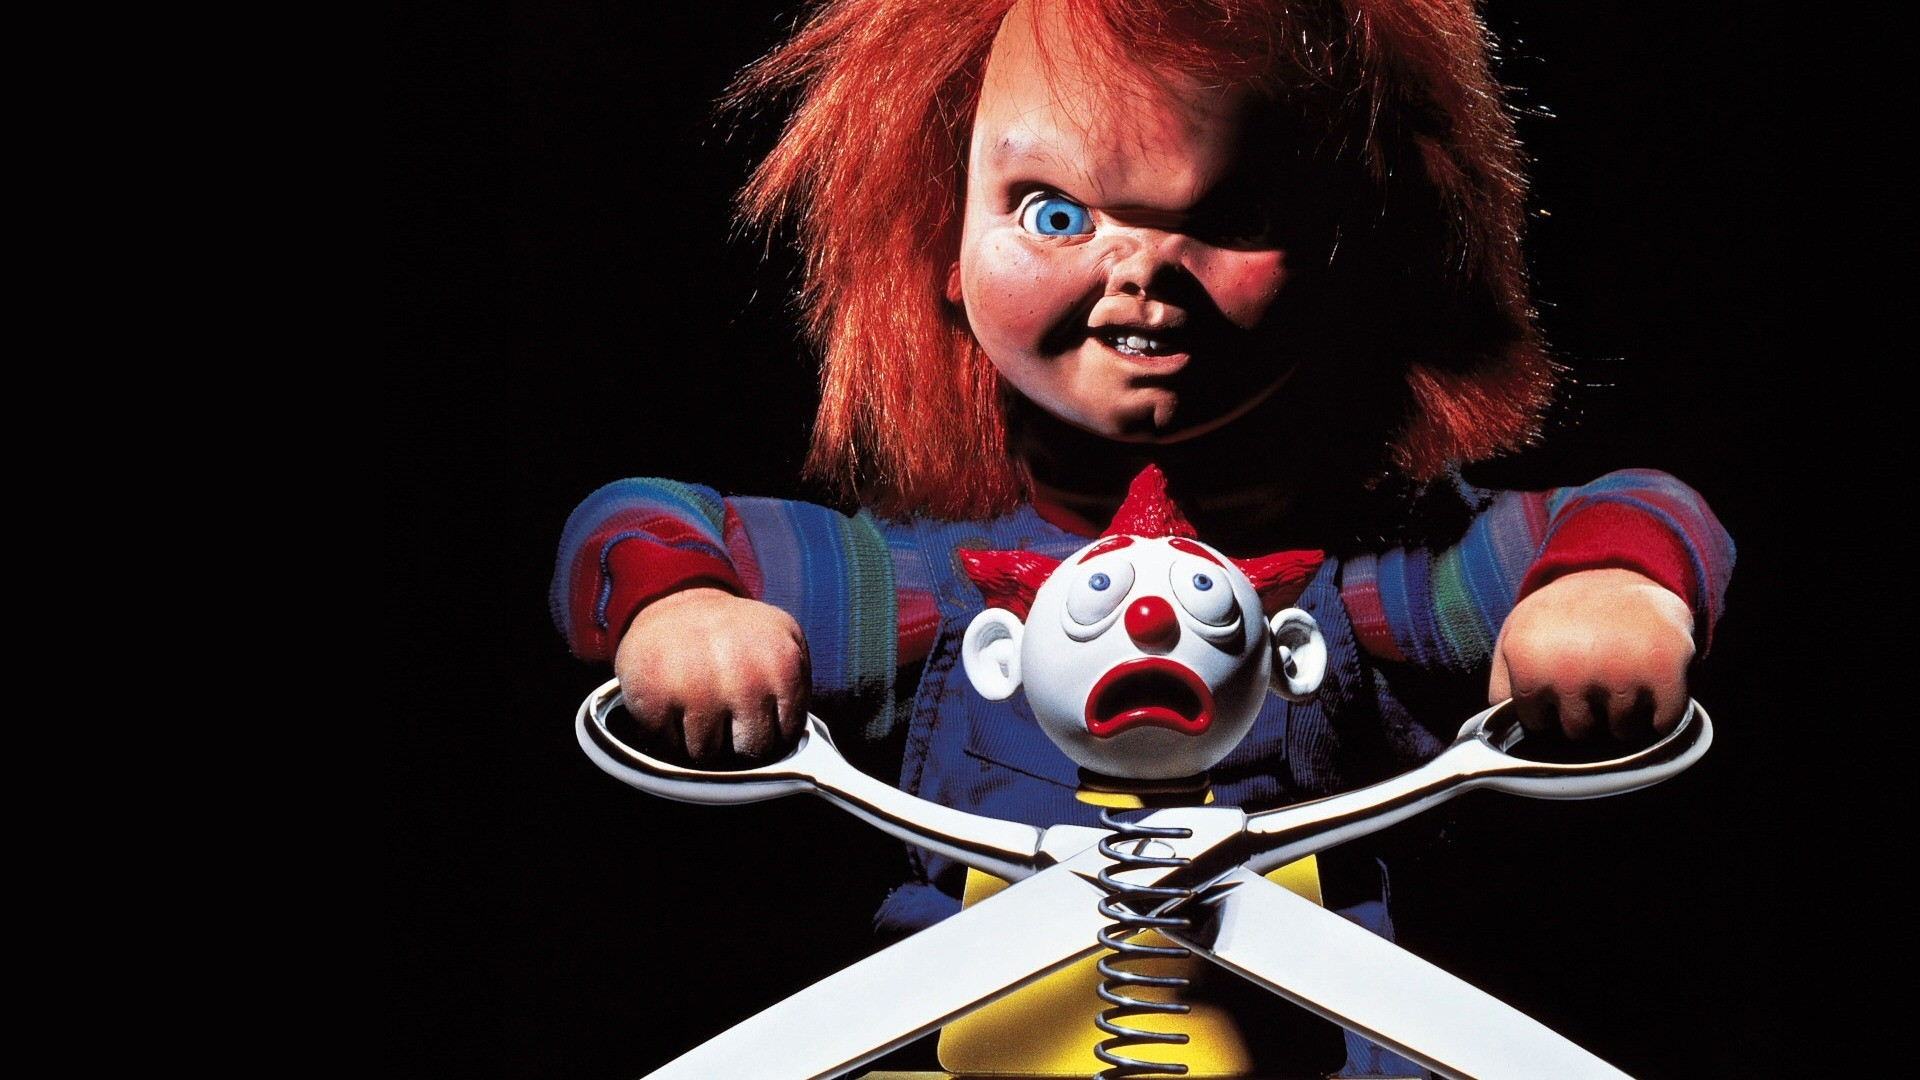 Perfect Pics Of Chucky Wallpaper Free Download Wallpapers – Download Free  Cool Wallpapers for PC Download